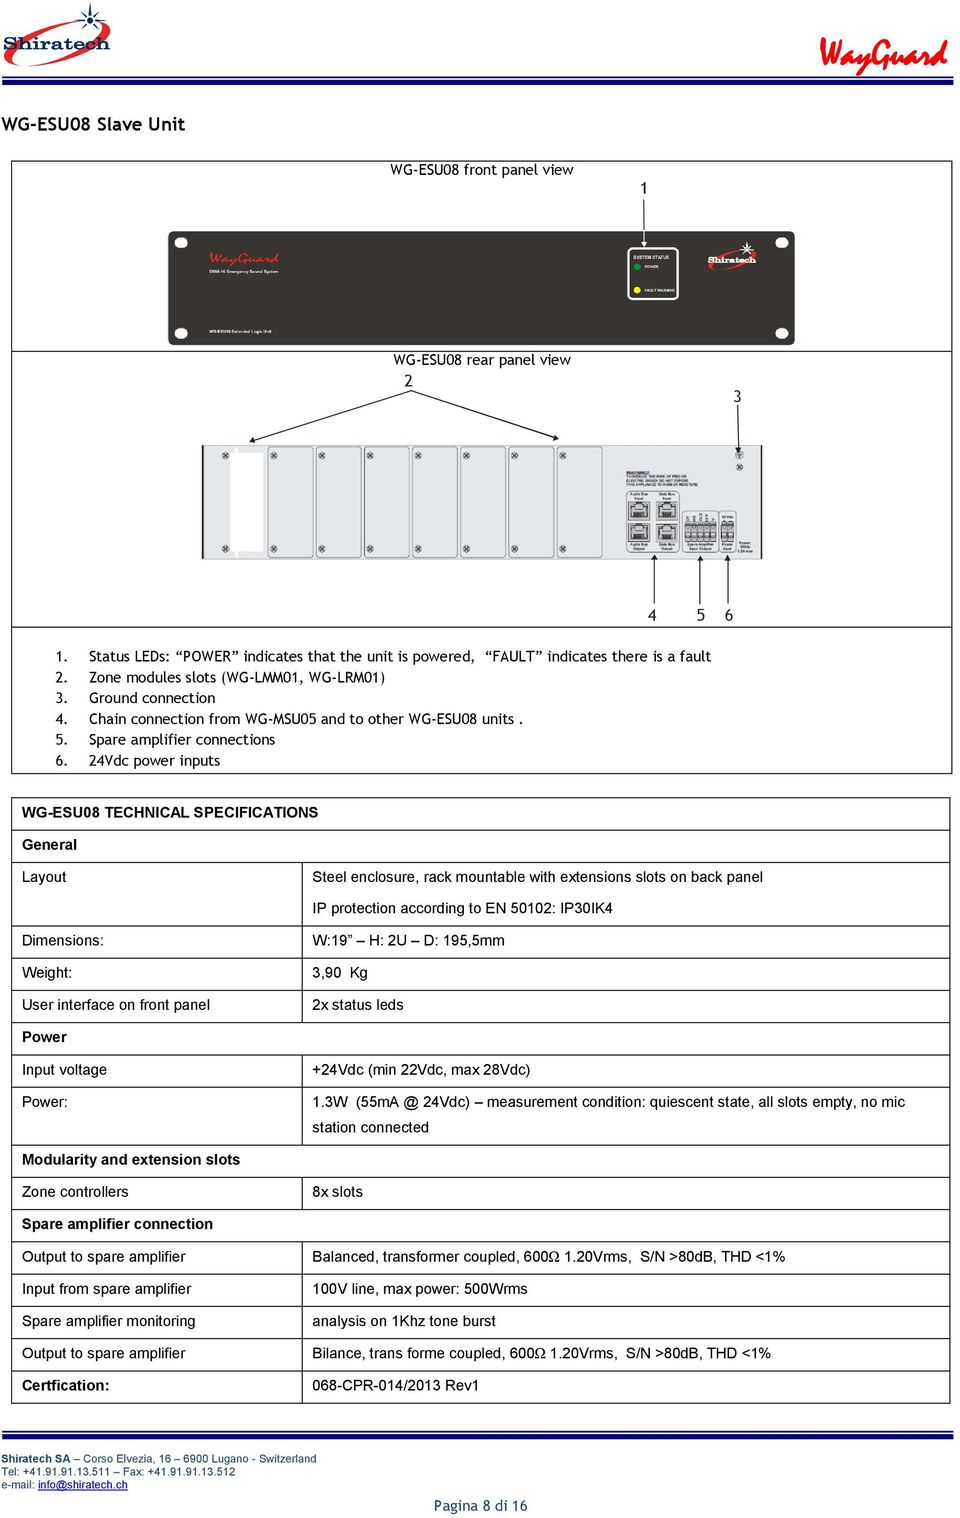 24Vdc power inputs WG-ESU08 TECHNICAL SPECIFICATIONS Steel enclosure, rack mountable with extensions slots on back panel IP protection according to EN 50102: IP30IK4 Dimensions: Weight: User